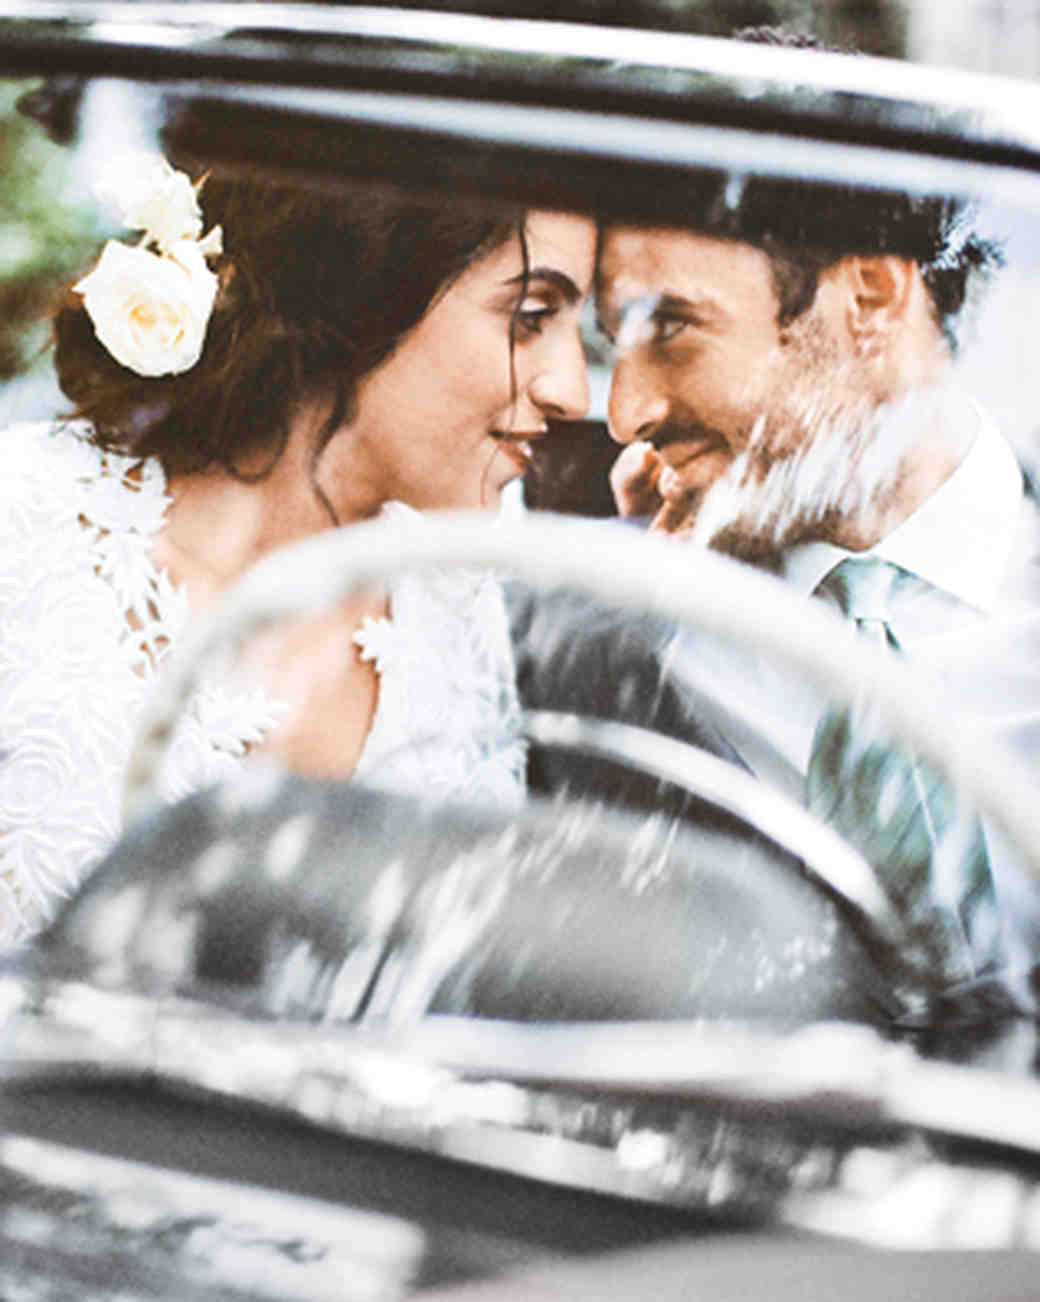 bride-groom-car-ride-just-married-wds10785453130015.jpg